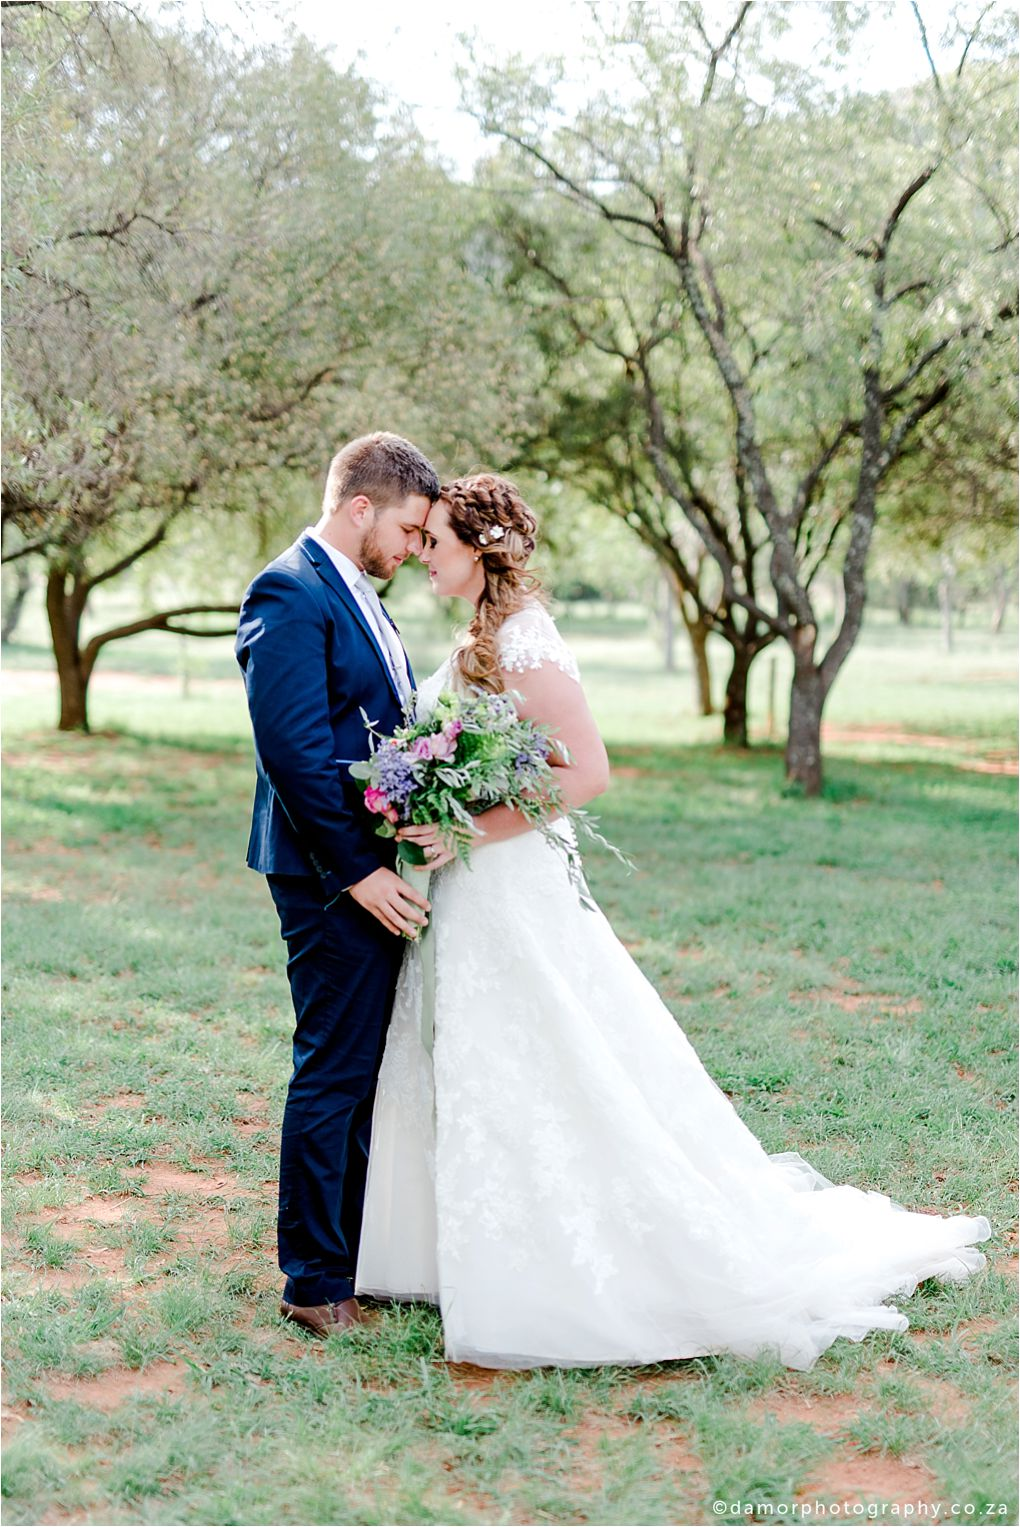 Stefan and Lizelda Wedding at Riversong Parys, Free Sate